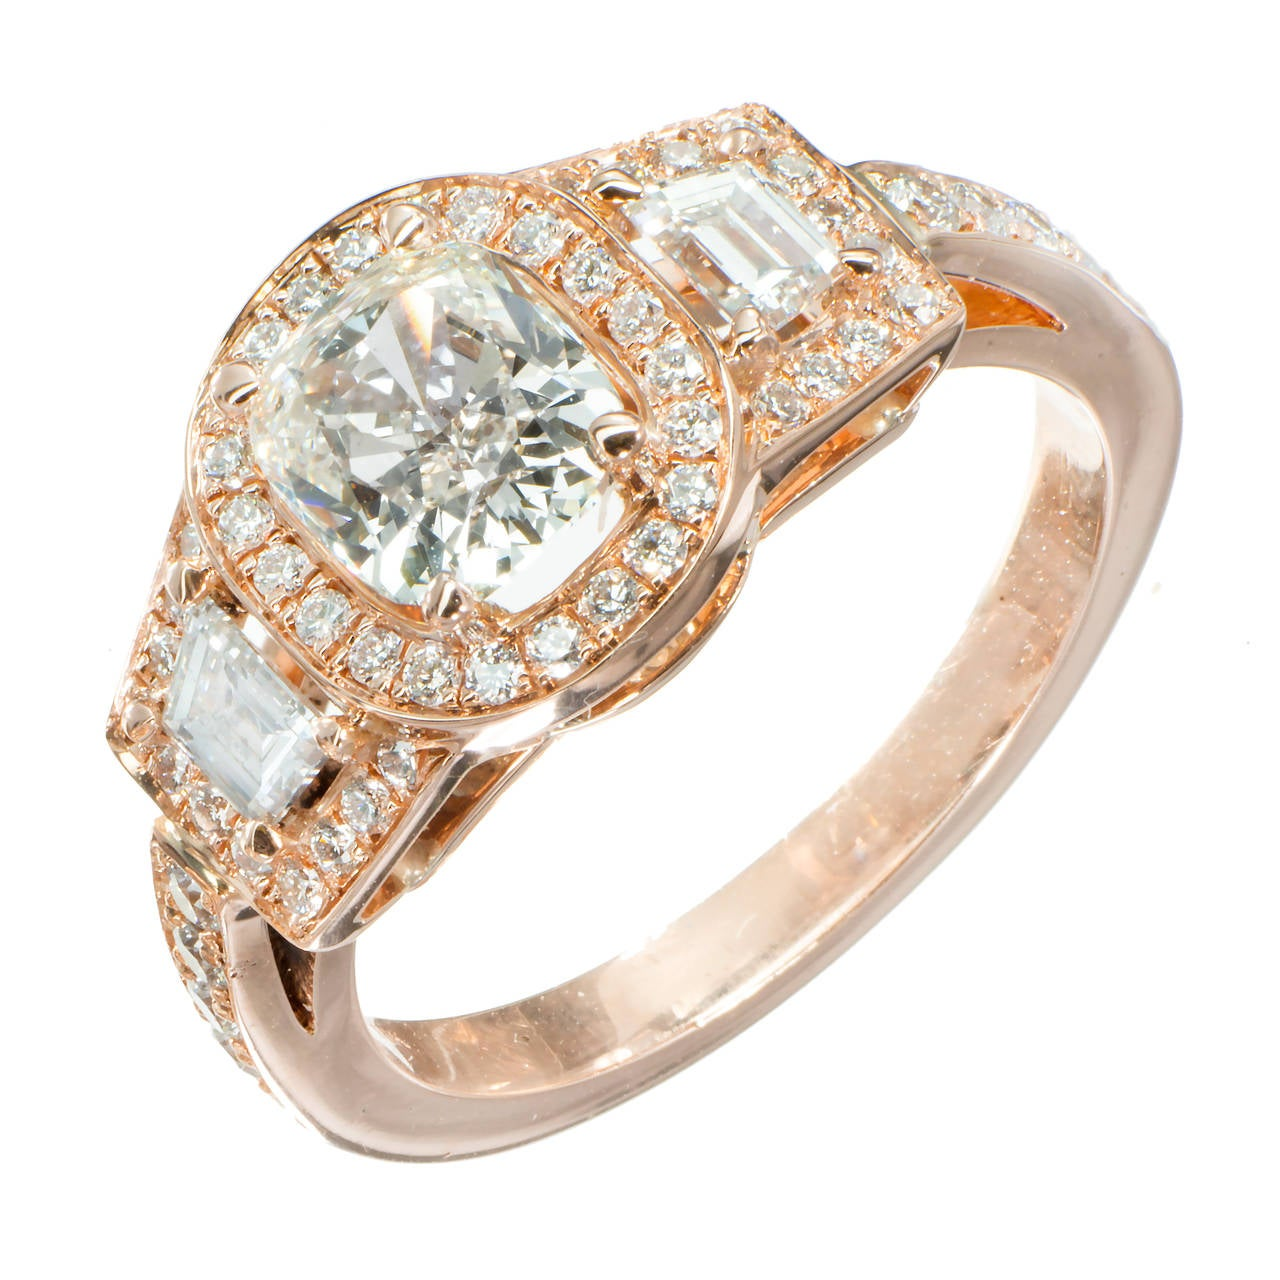 Old cushion cut sparkly three-stone diamond 1.03cts engagement ring. The cushion cut center and 2 trapezoid diamonds are from a 1920's estate. The 18k rose gold round diamond halo setting is from the Peter Suchy Workshop. EGL certified, EGL